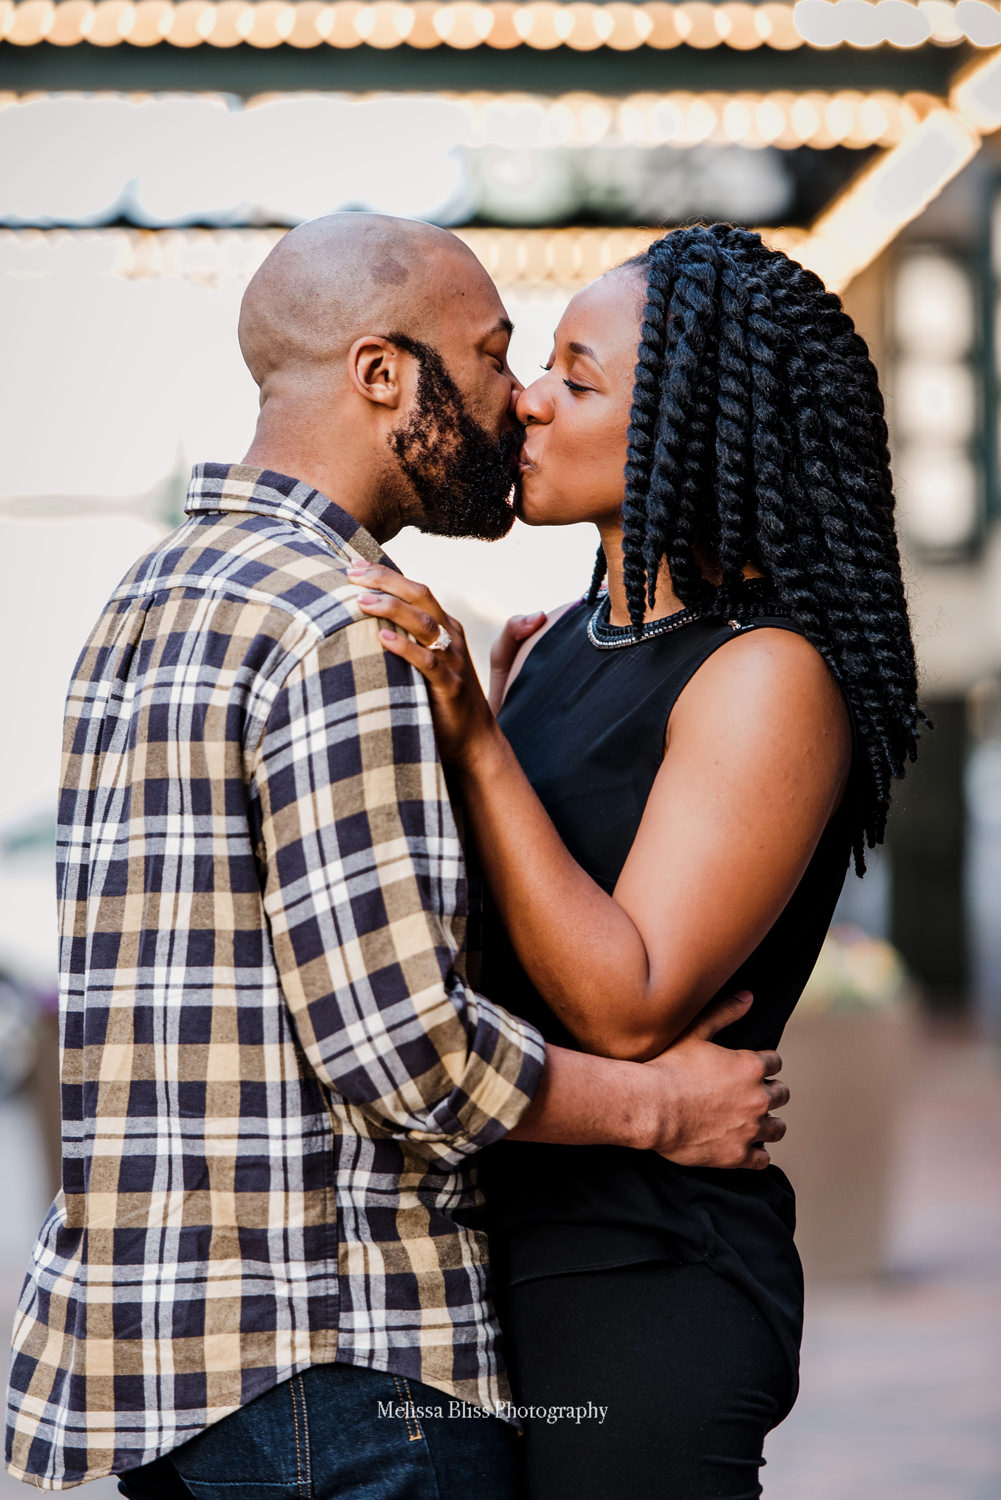 norfolk-va-engagement-photos-at-the-main-melissa-bliss-photoraphy.jpg